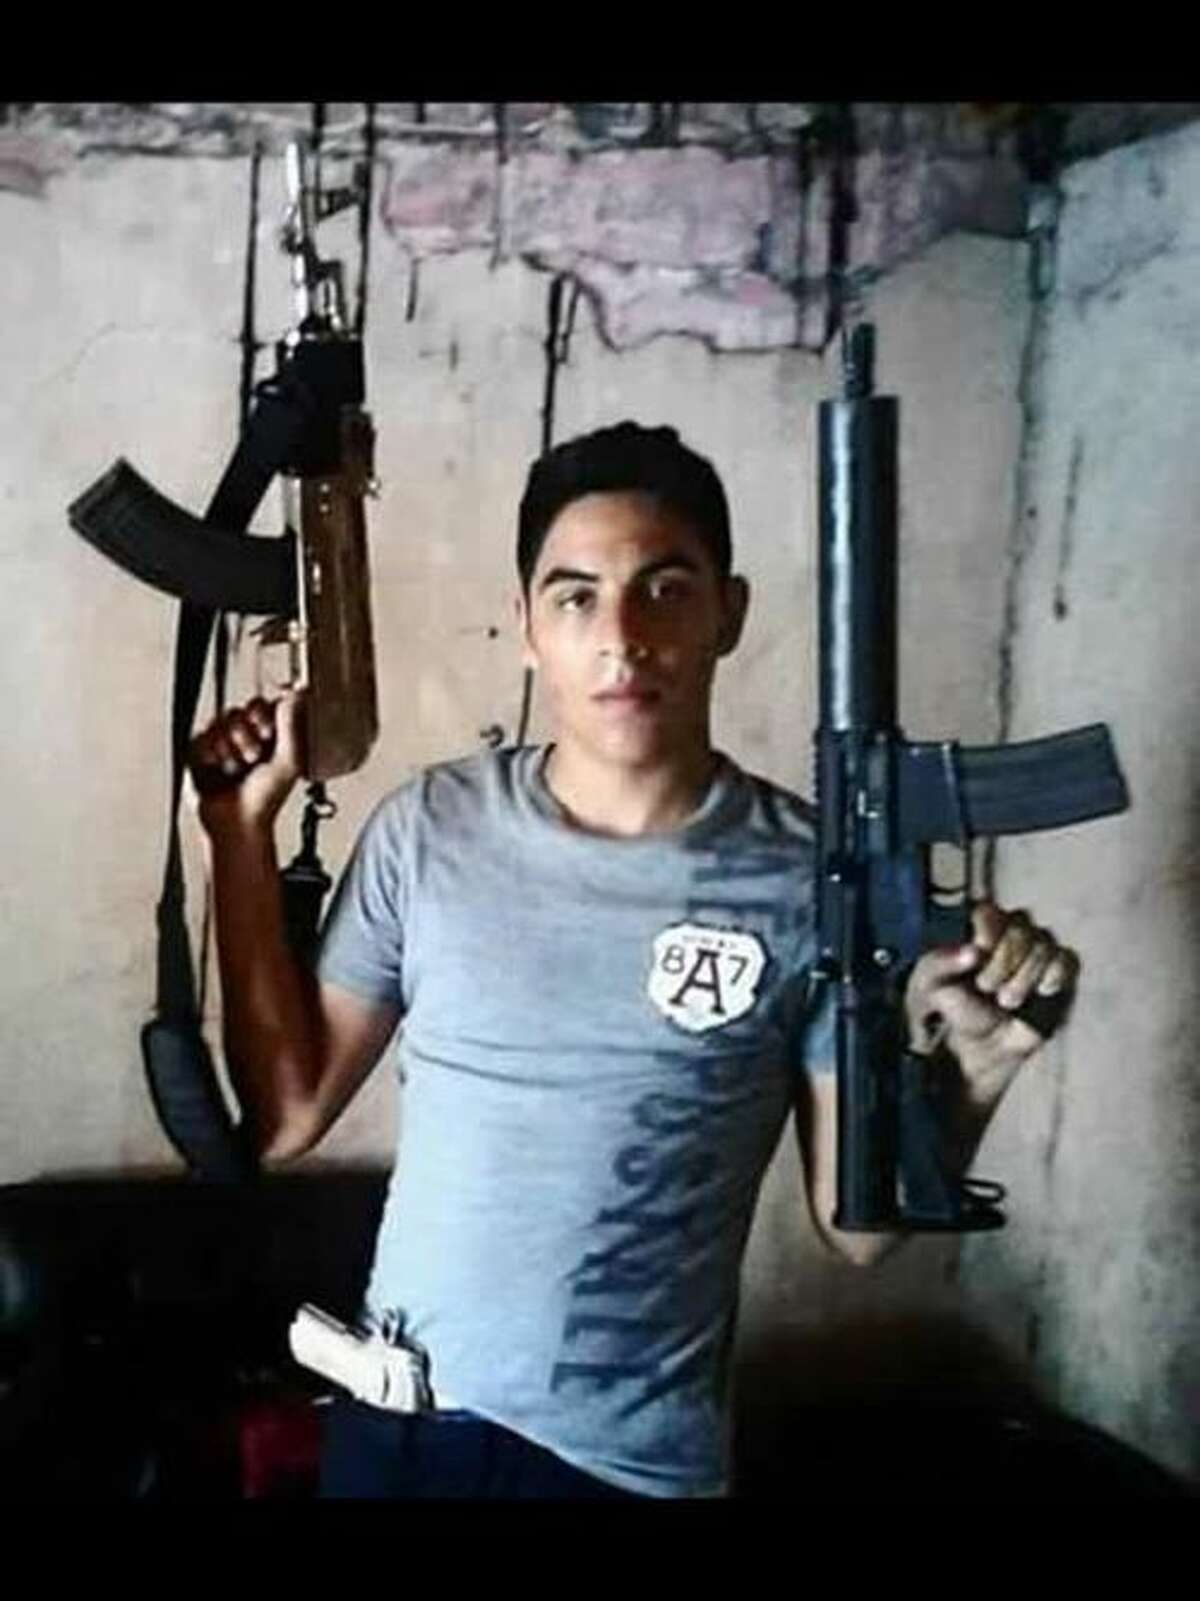 El Blog Del Narco published a collection of behind-the-scenes photos in 2015 of purported Gulf Cartel members showing their faces and guns.